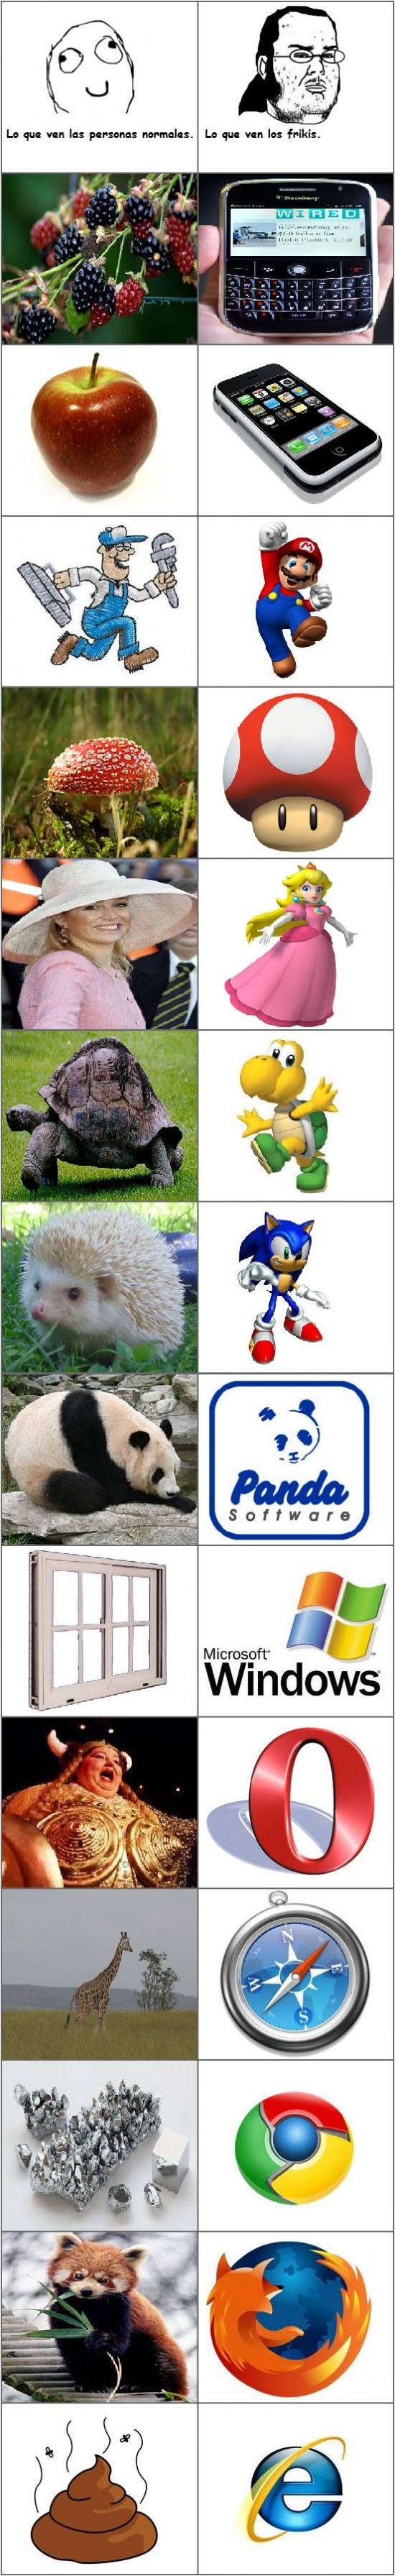 apple,blackberry,Chrome,Firefox,friki,hongo,Internet Explorer,Mario,Opera,Panda,princesa peach,Safari,Sonic,tortuga,Windows